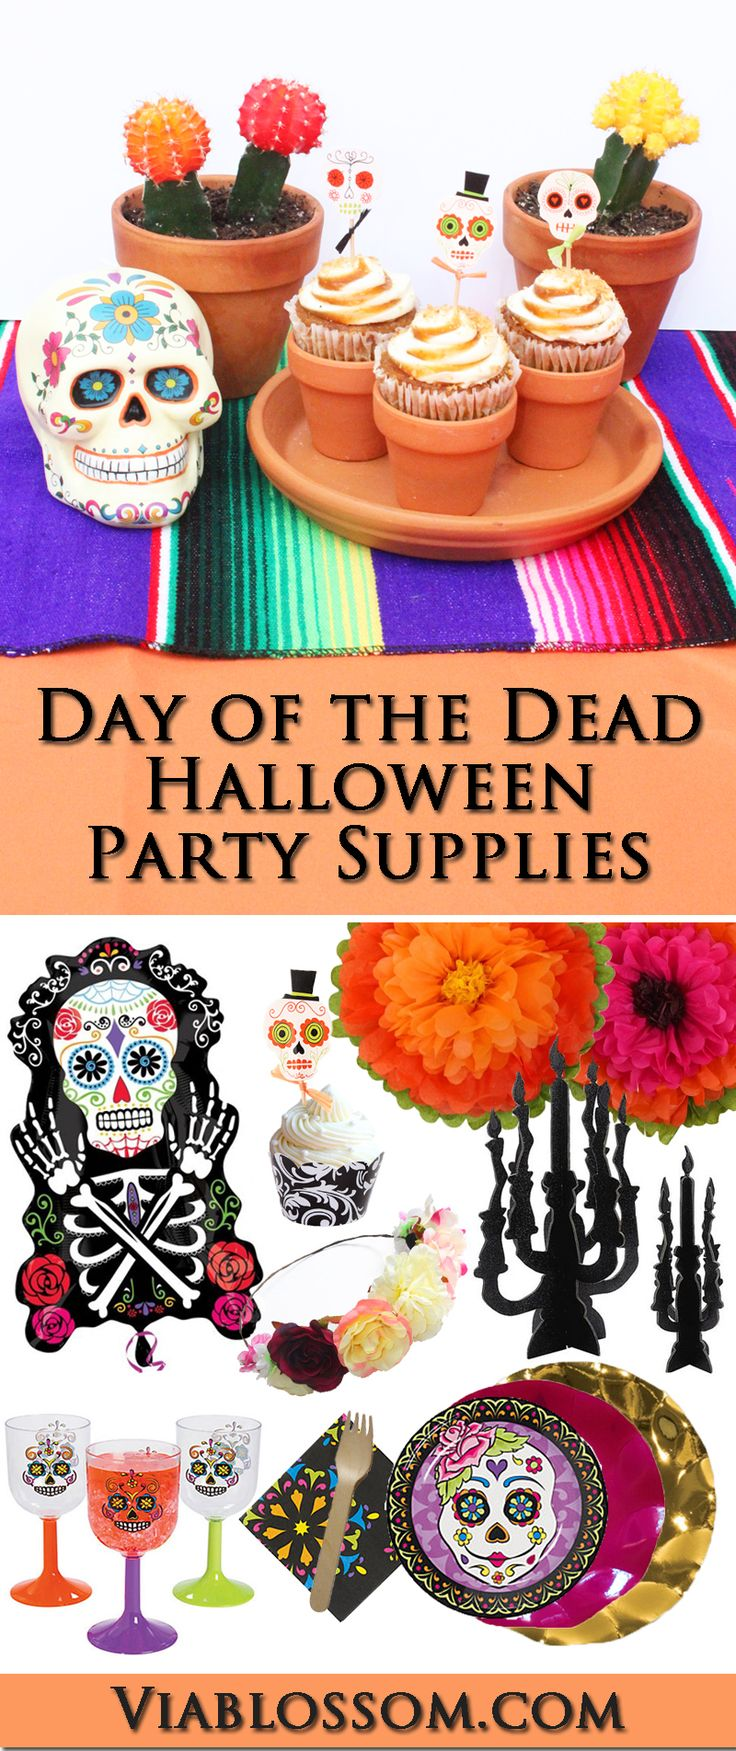 40 best Day of the Dead Halloween Party Ideas images on Pinterest